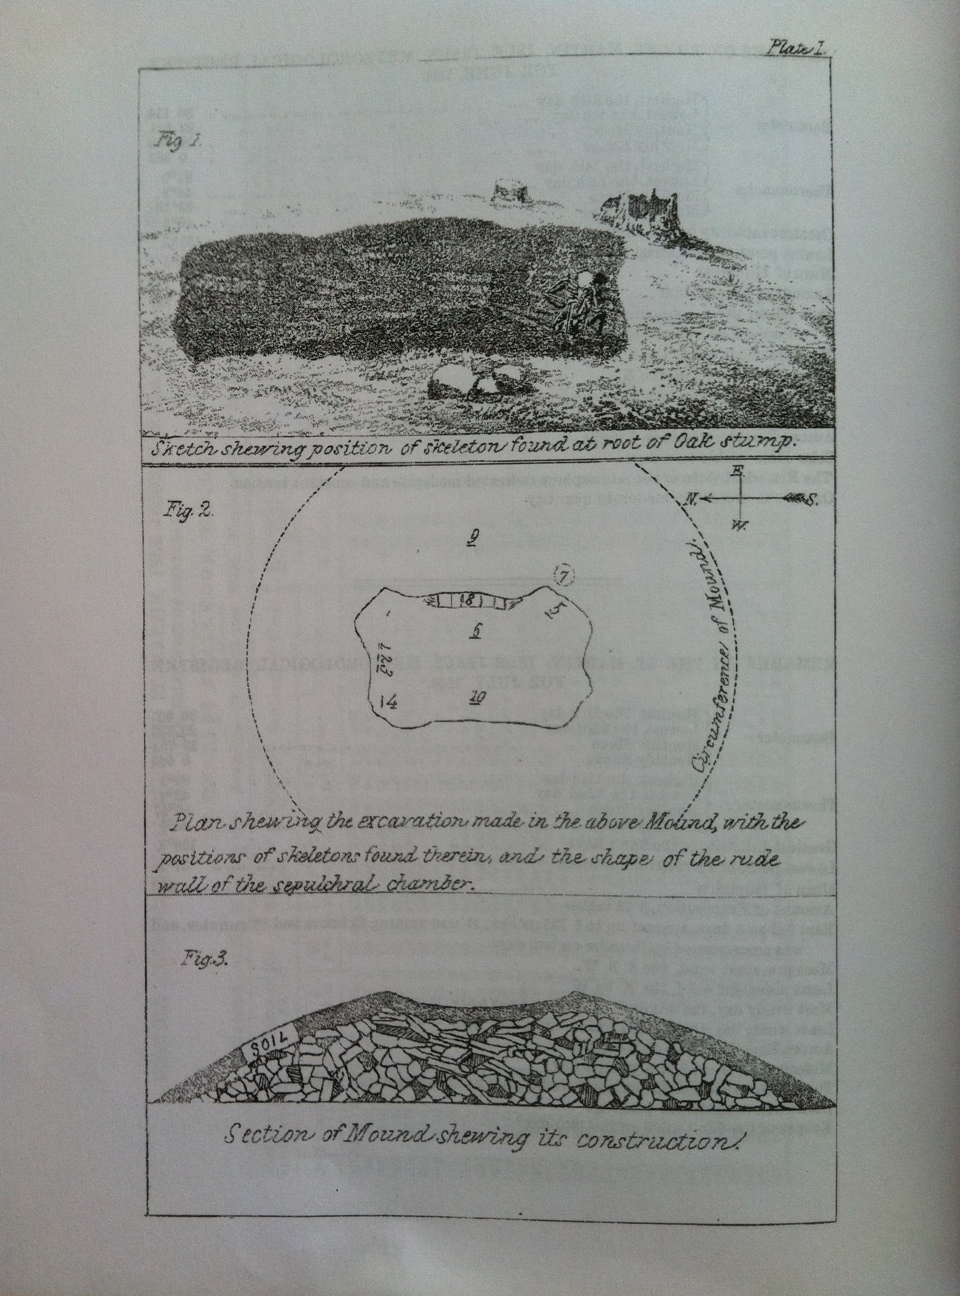 Wall bridge's sketches of his examination of the ancient mounds in Prince Edward County.